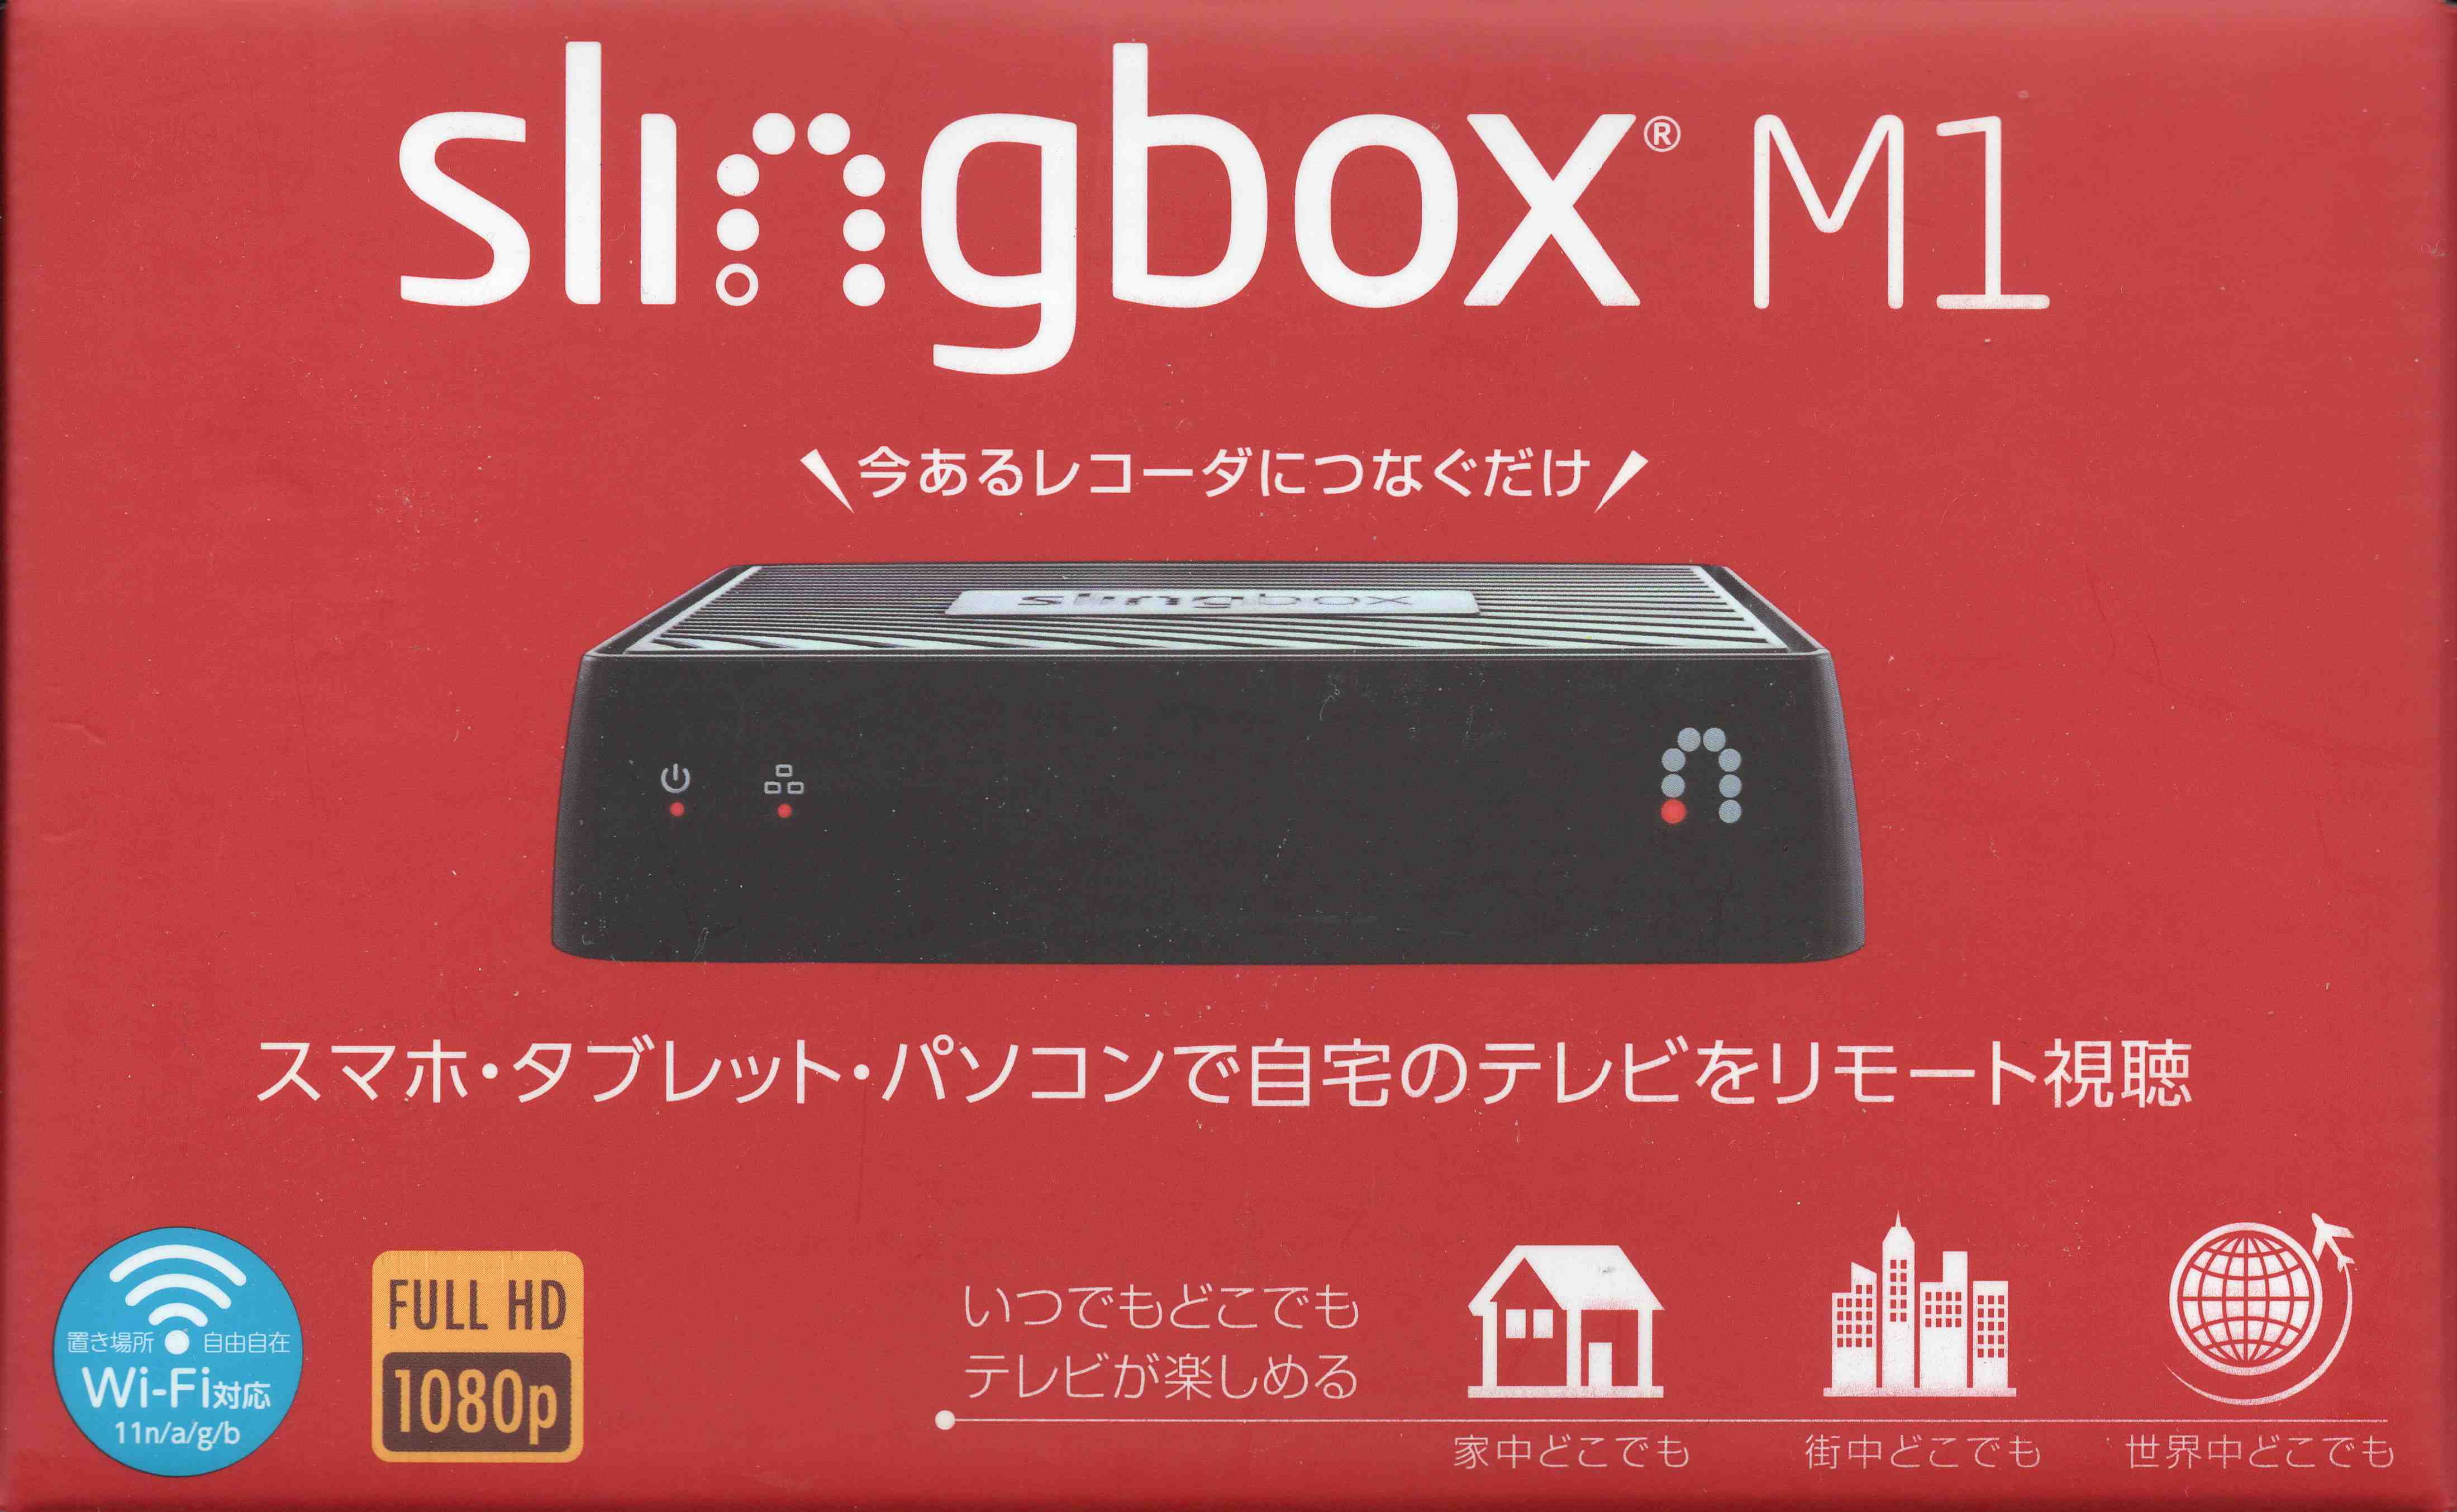 INTO THE NEXT STAGE: Slingbox Succeeds for Watching Japanese